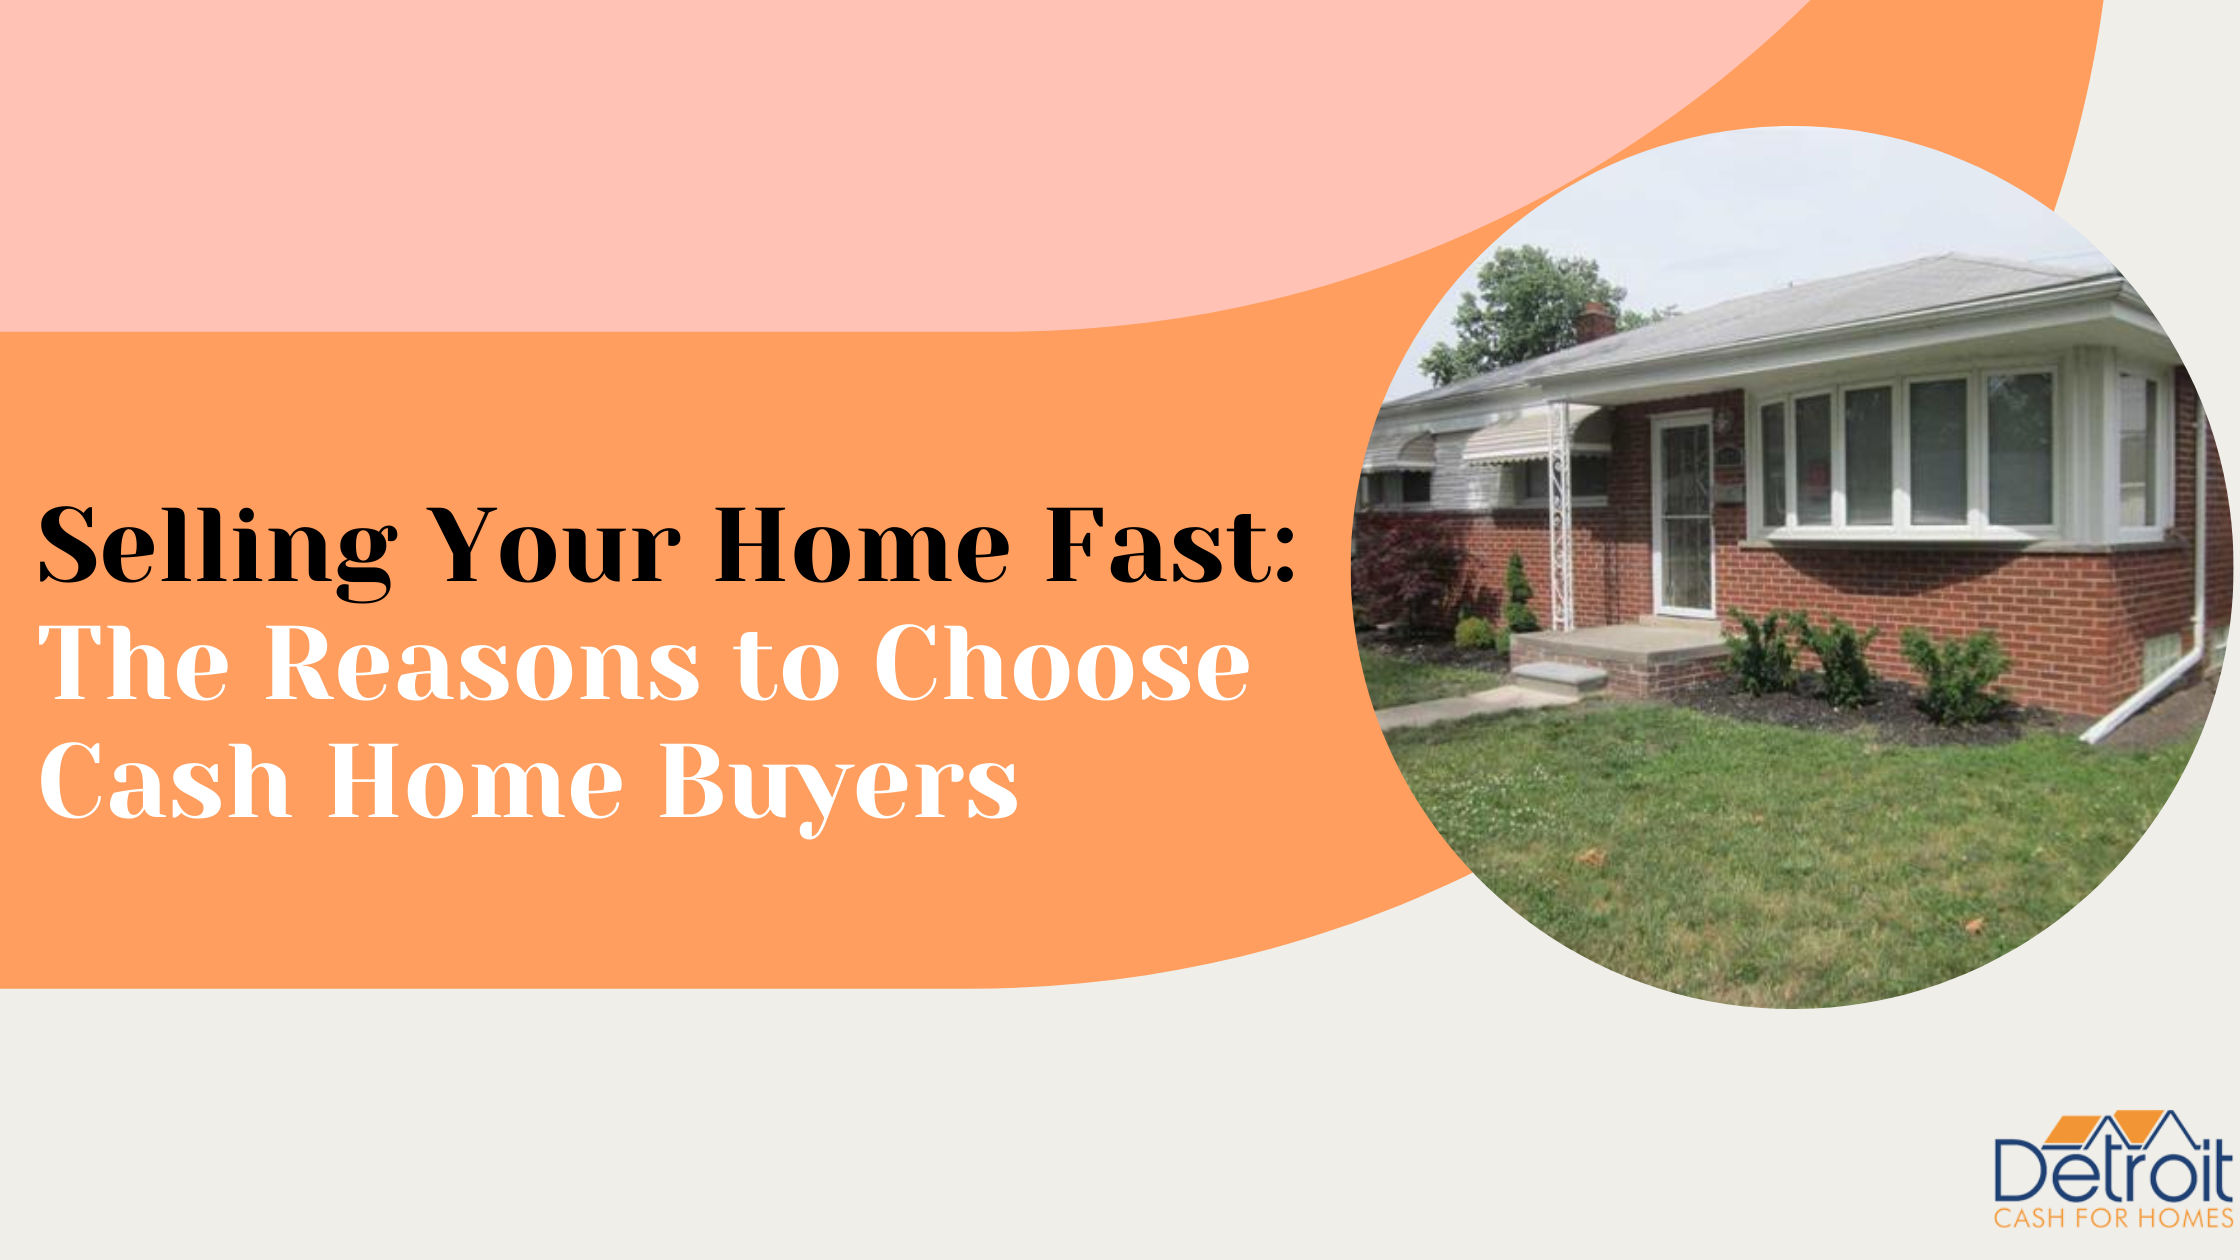 Selling Your Home Fast: The Reasons to Choose Cash Home Buyers